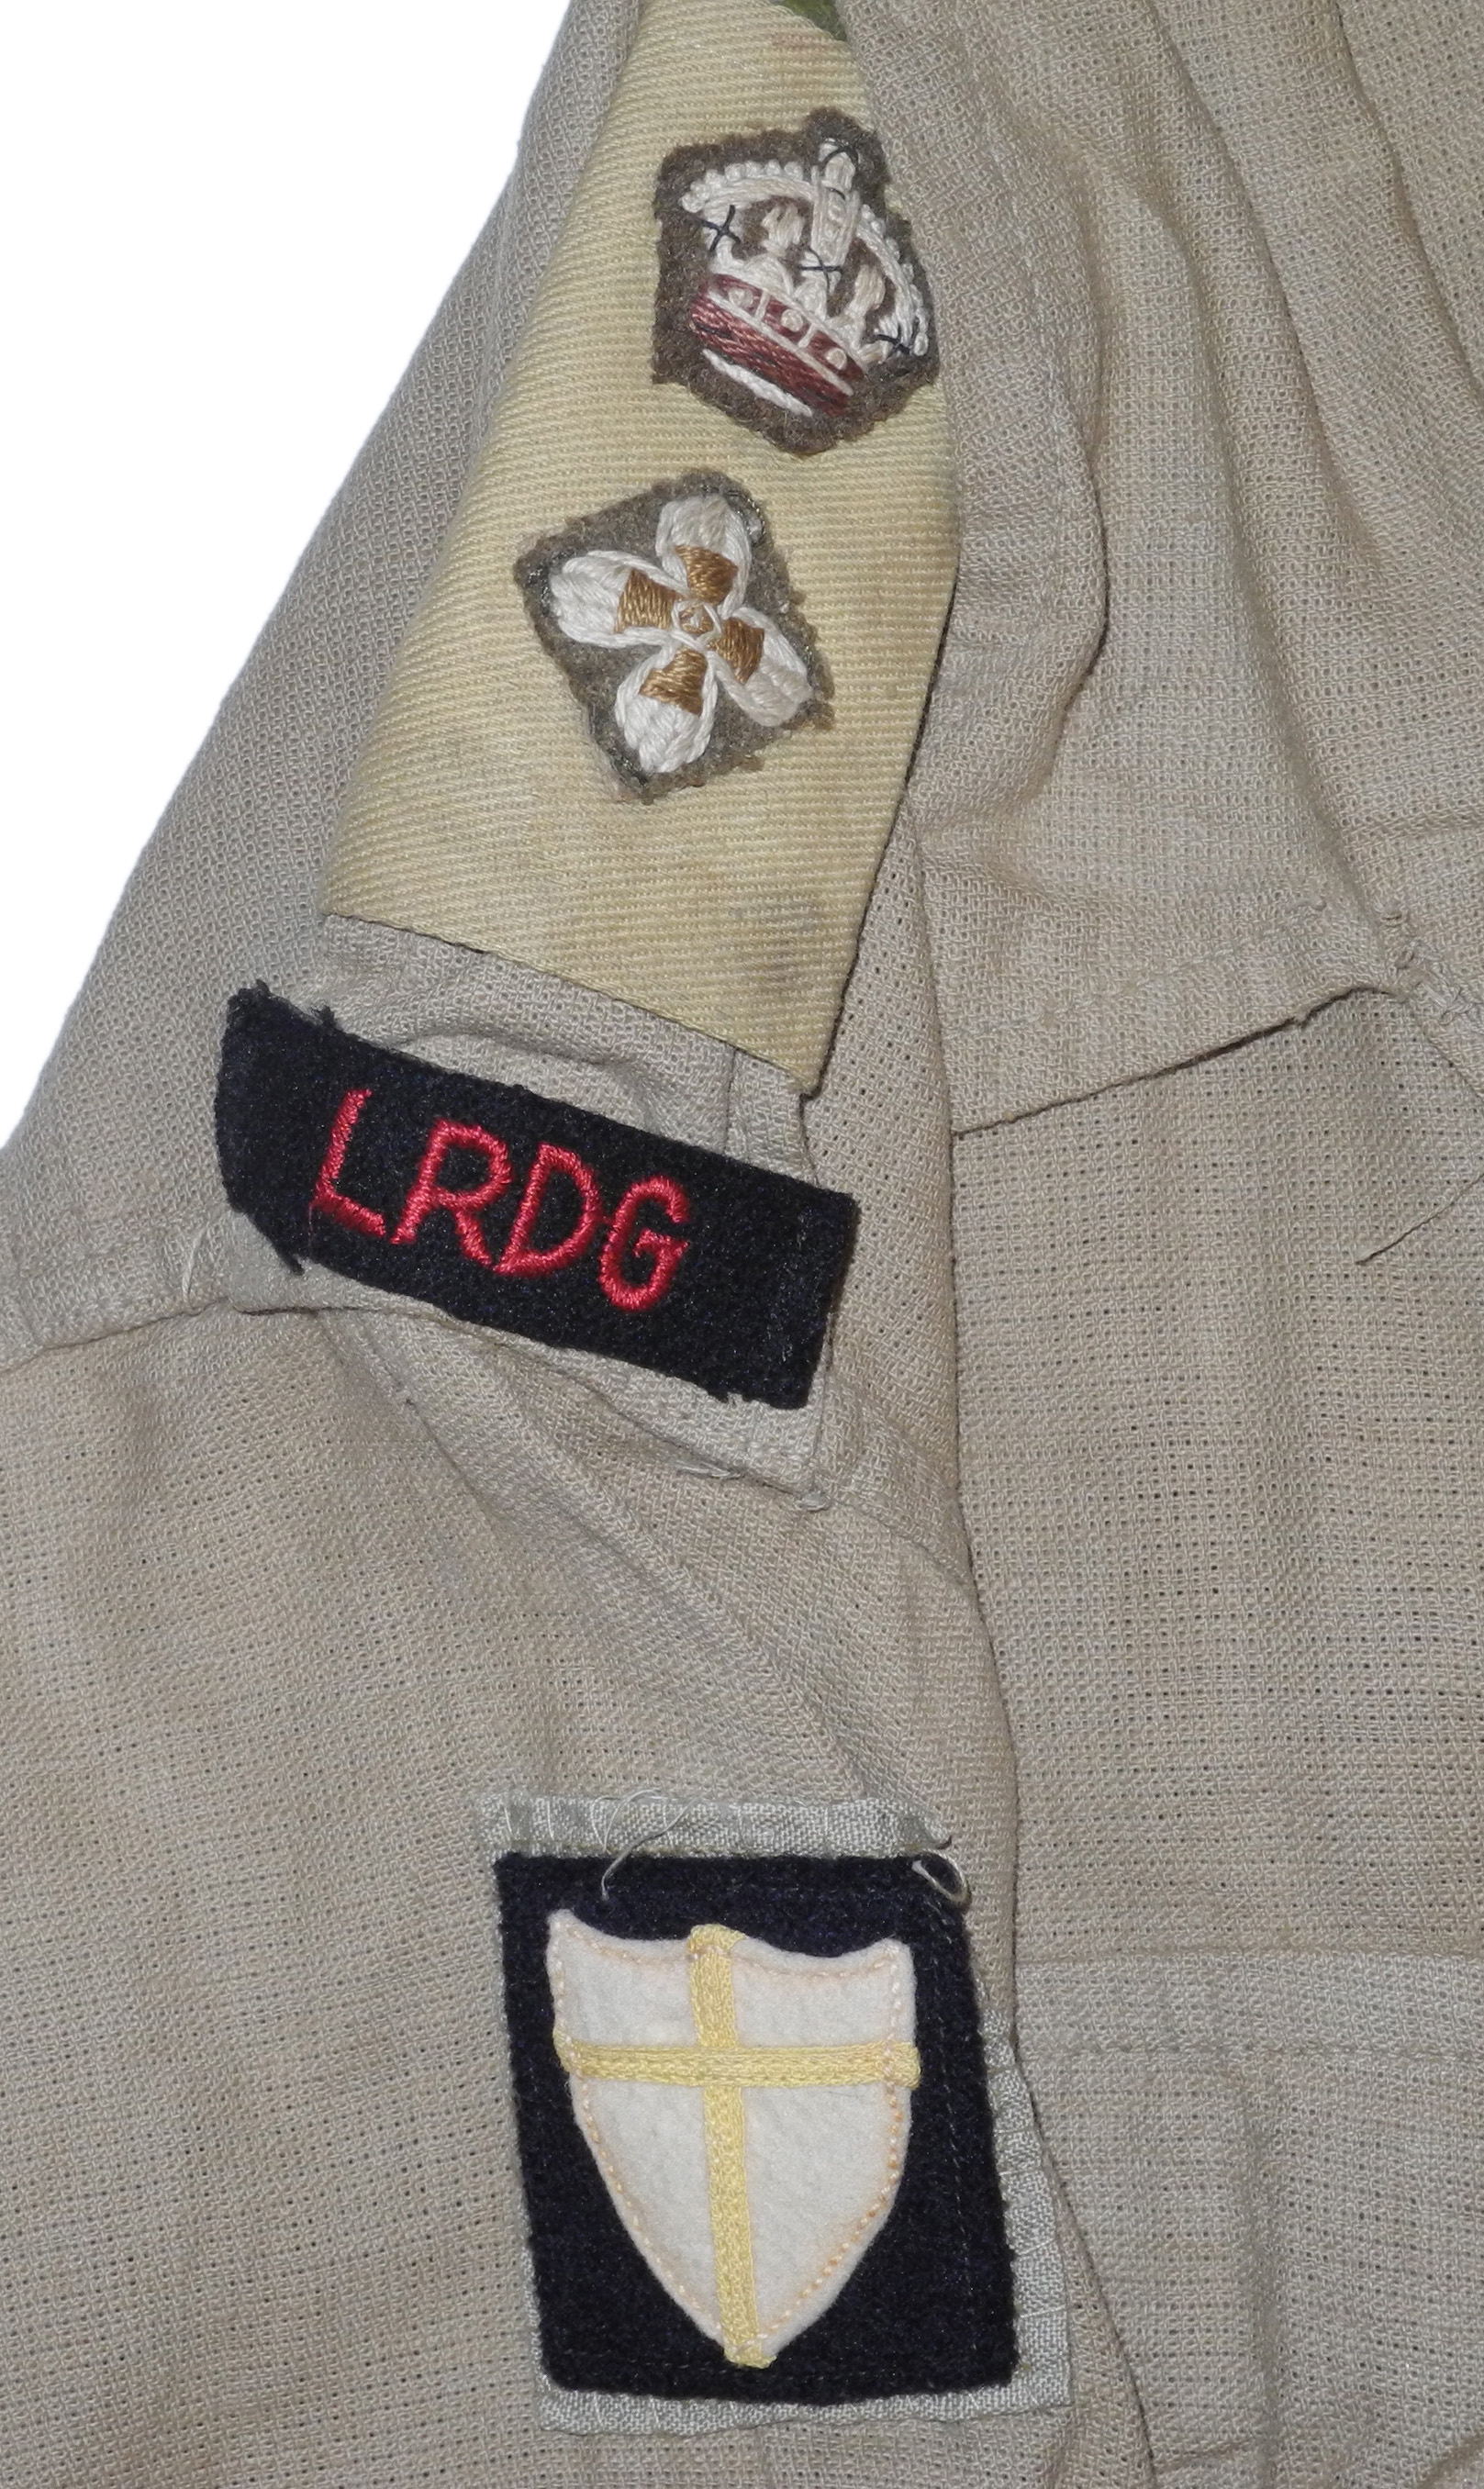 British 8th Army LRDG bush shirt/jacket